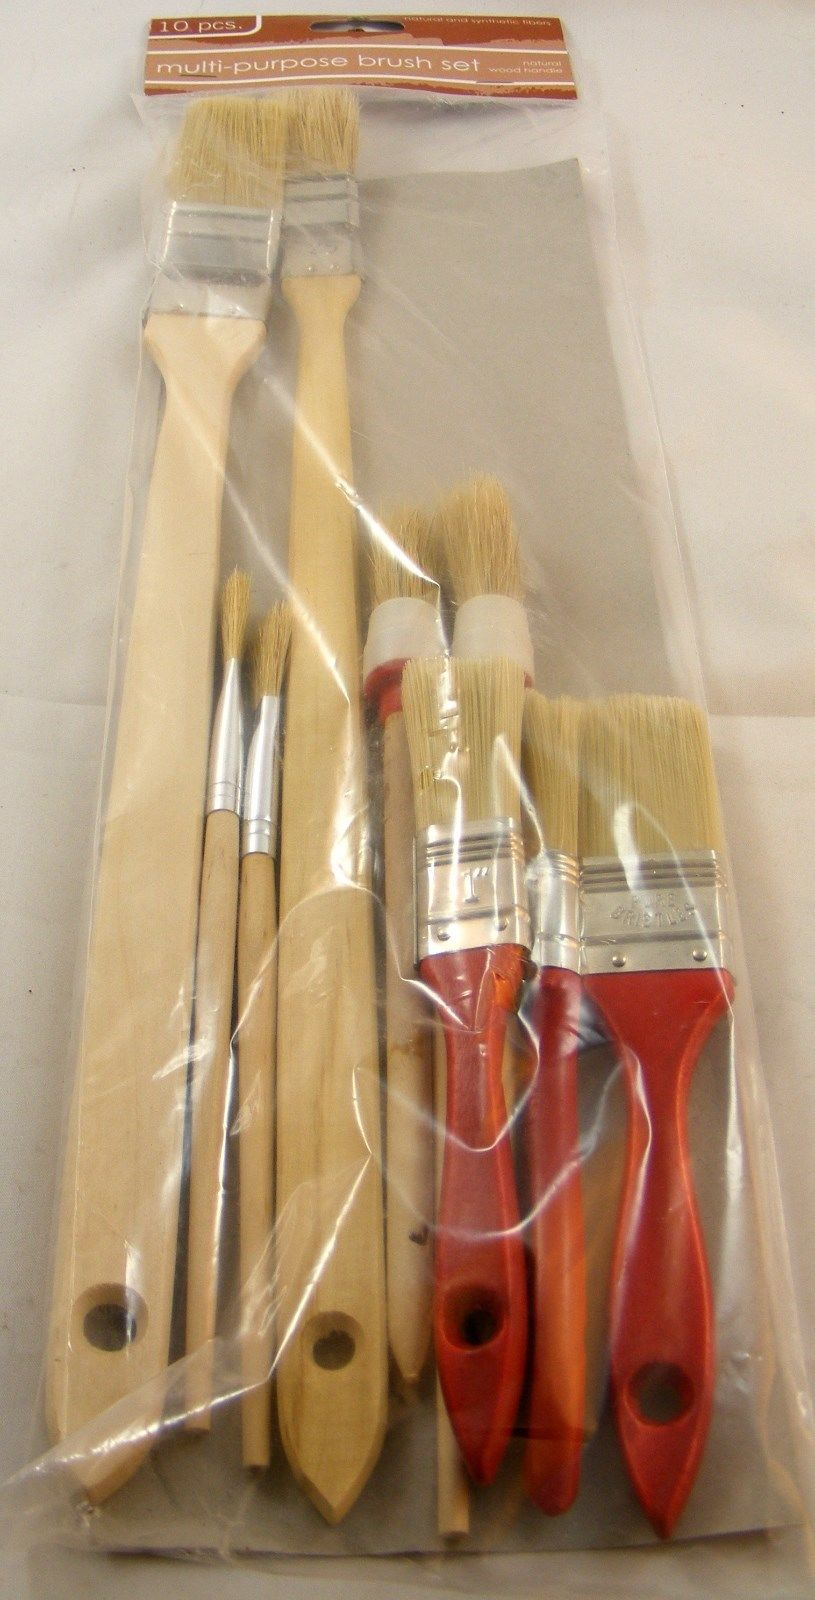 Primary image for Brush Set 10 Piece Multi Purpose Natural and Synthetic Fibers Free Shipping